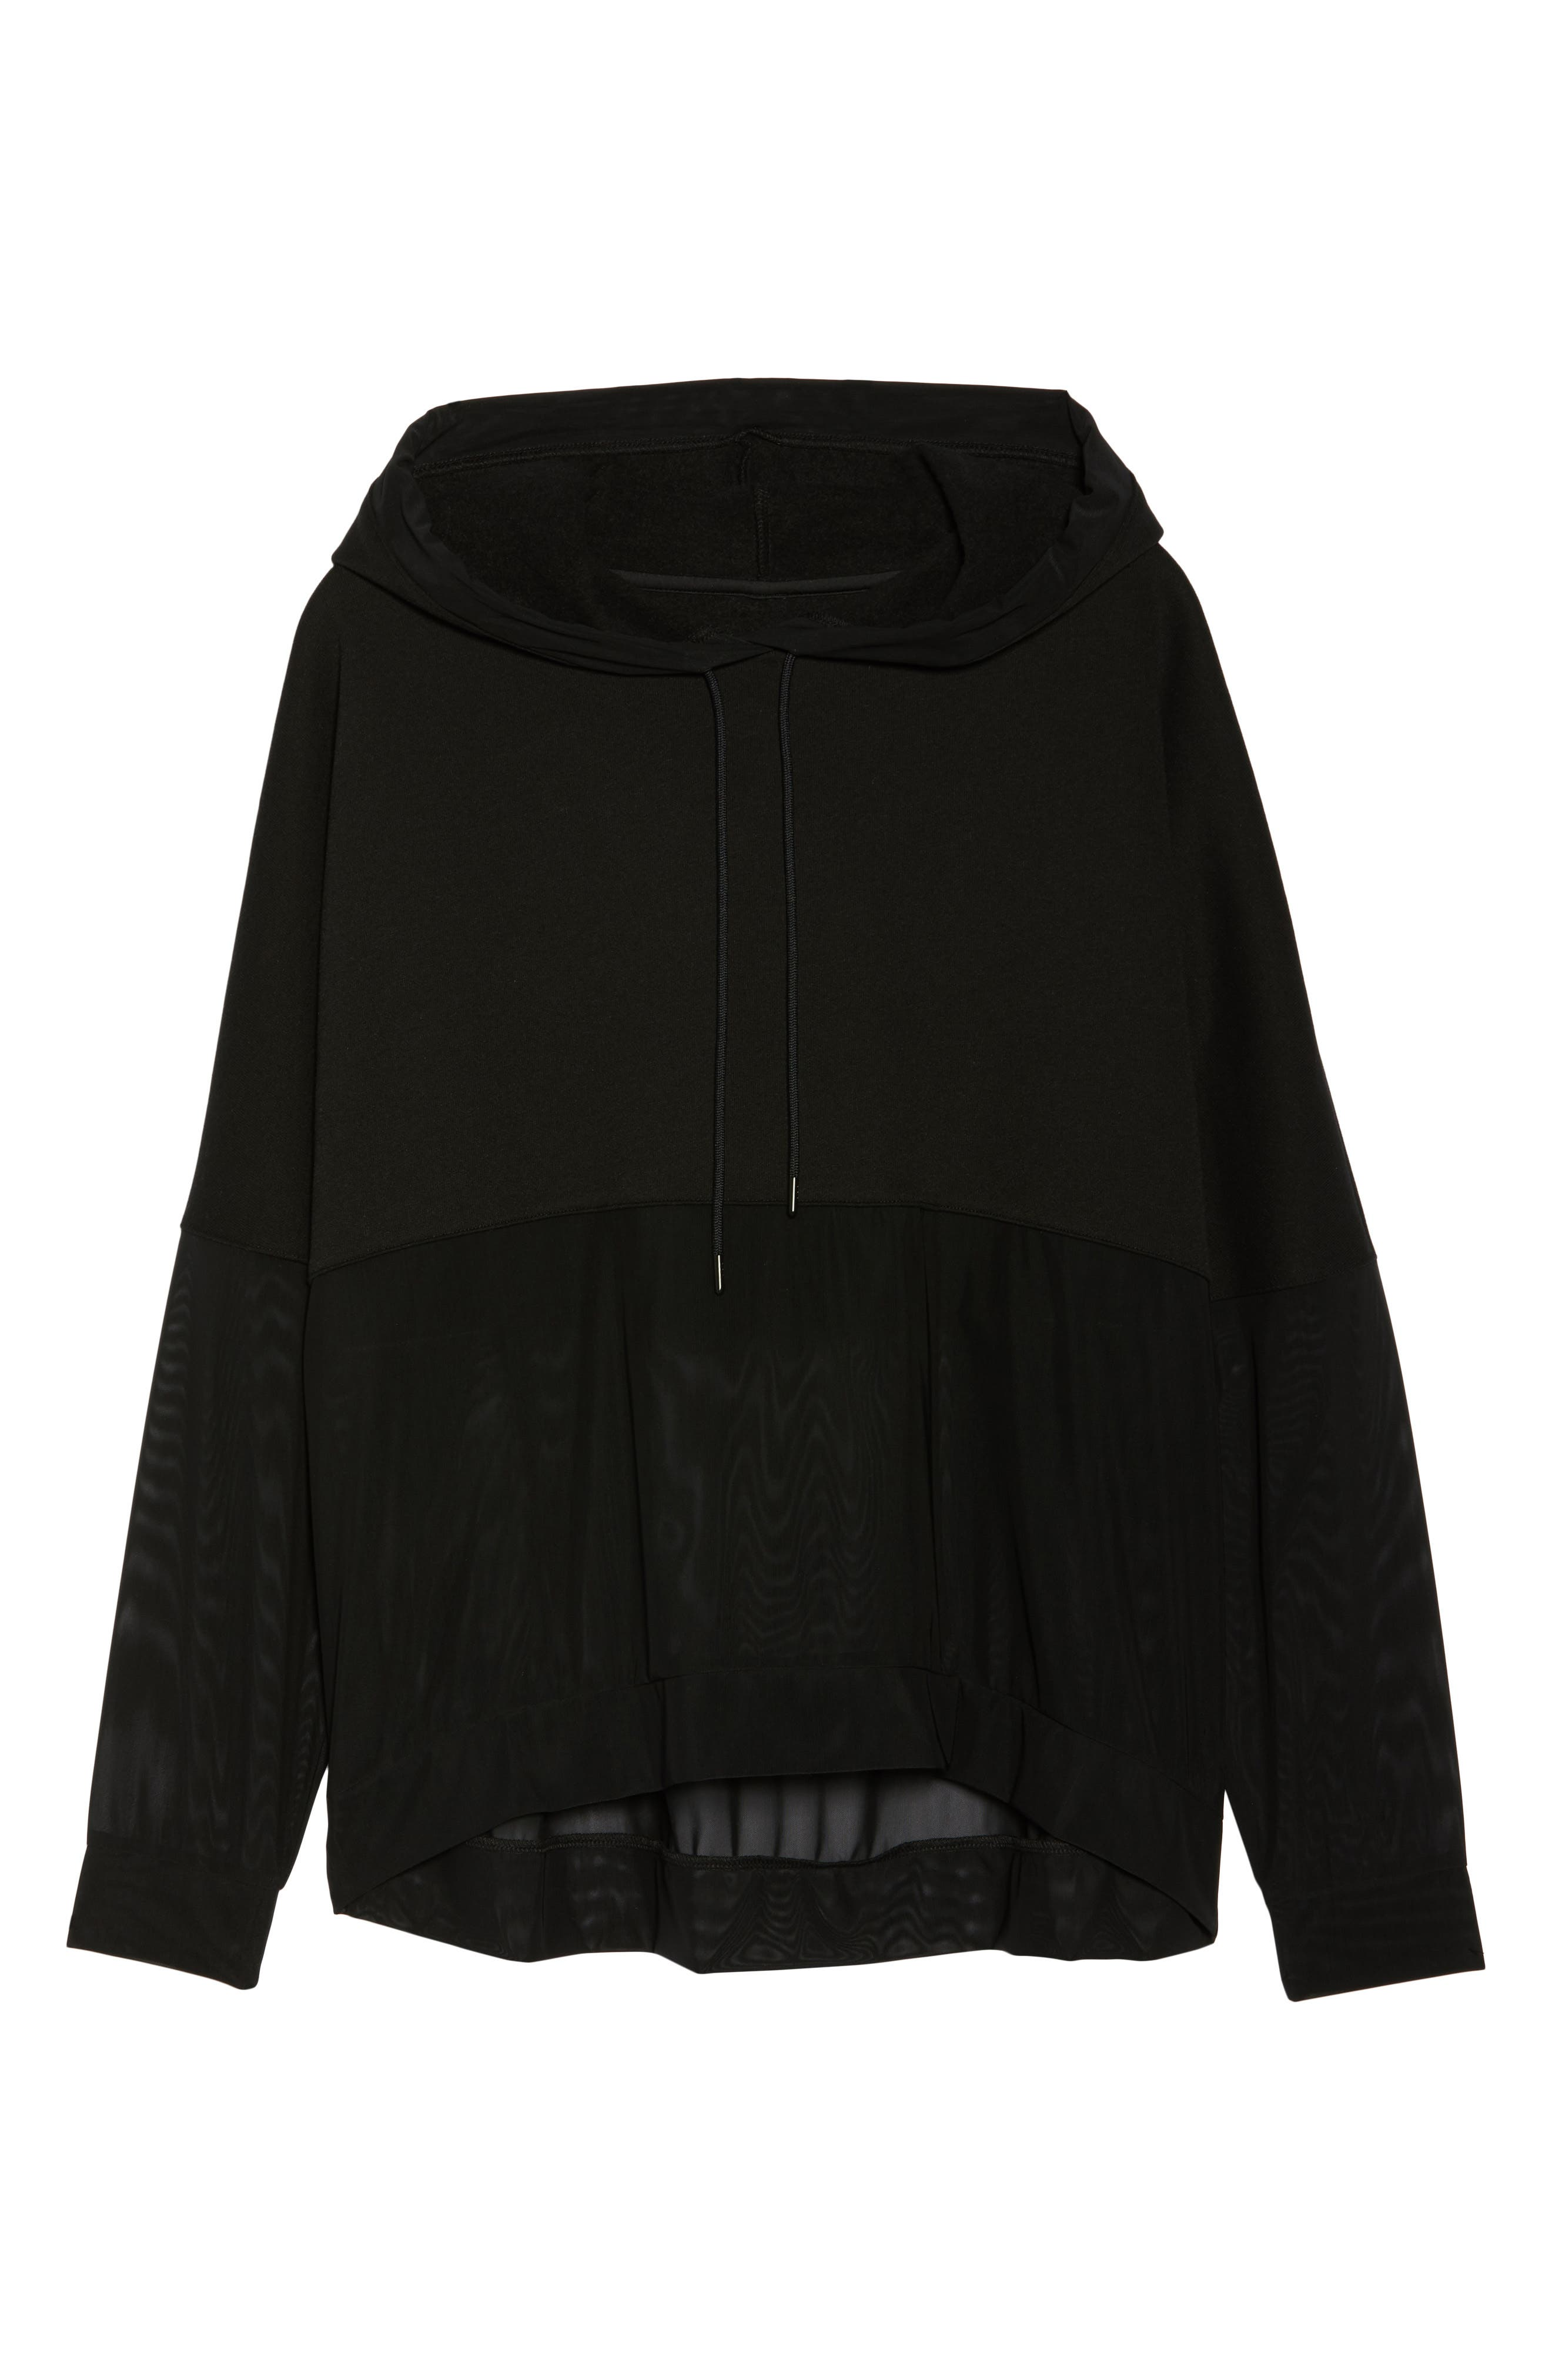 Perspective Hoodie,                             Alternate thumbnail 7, color,                             Black